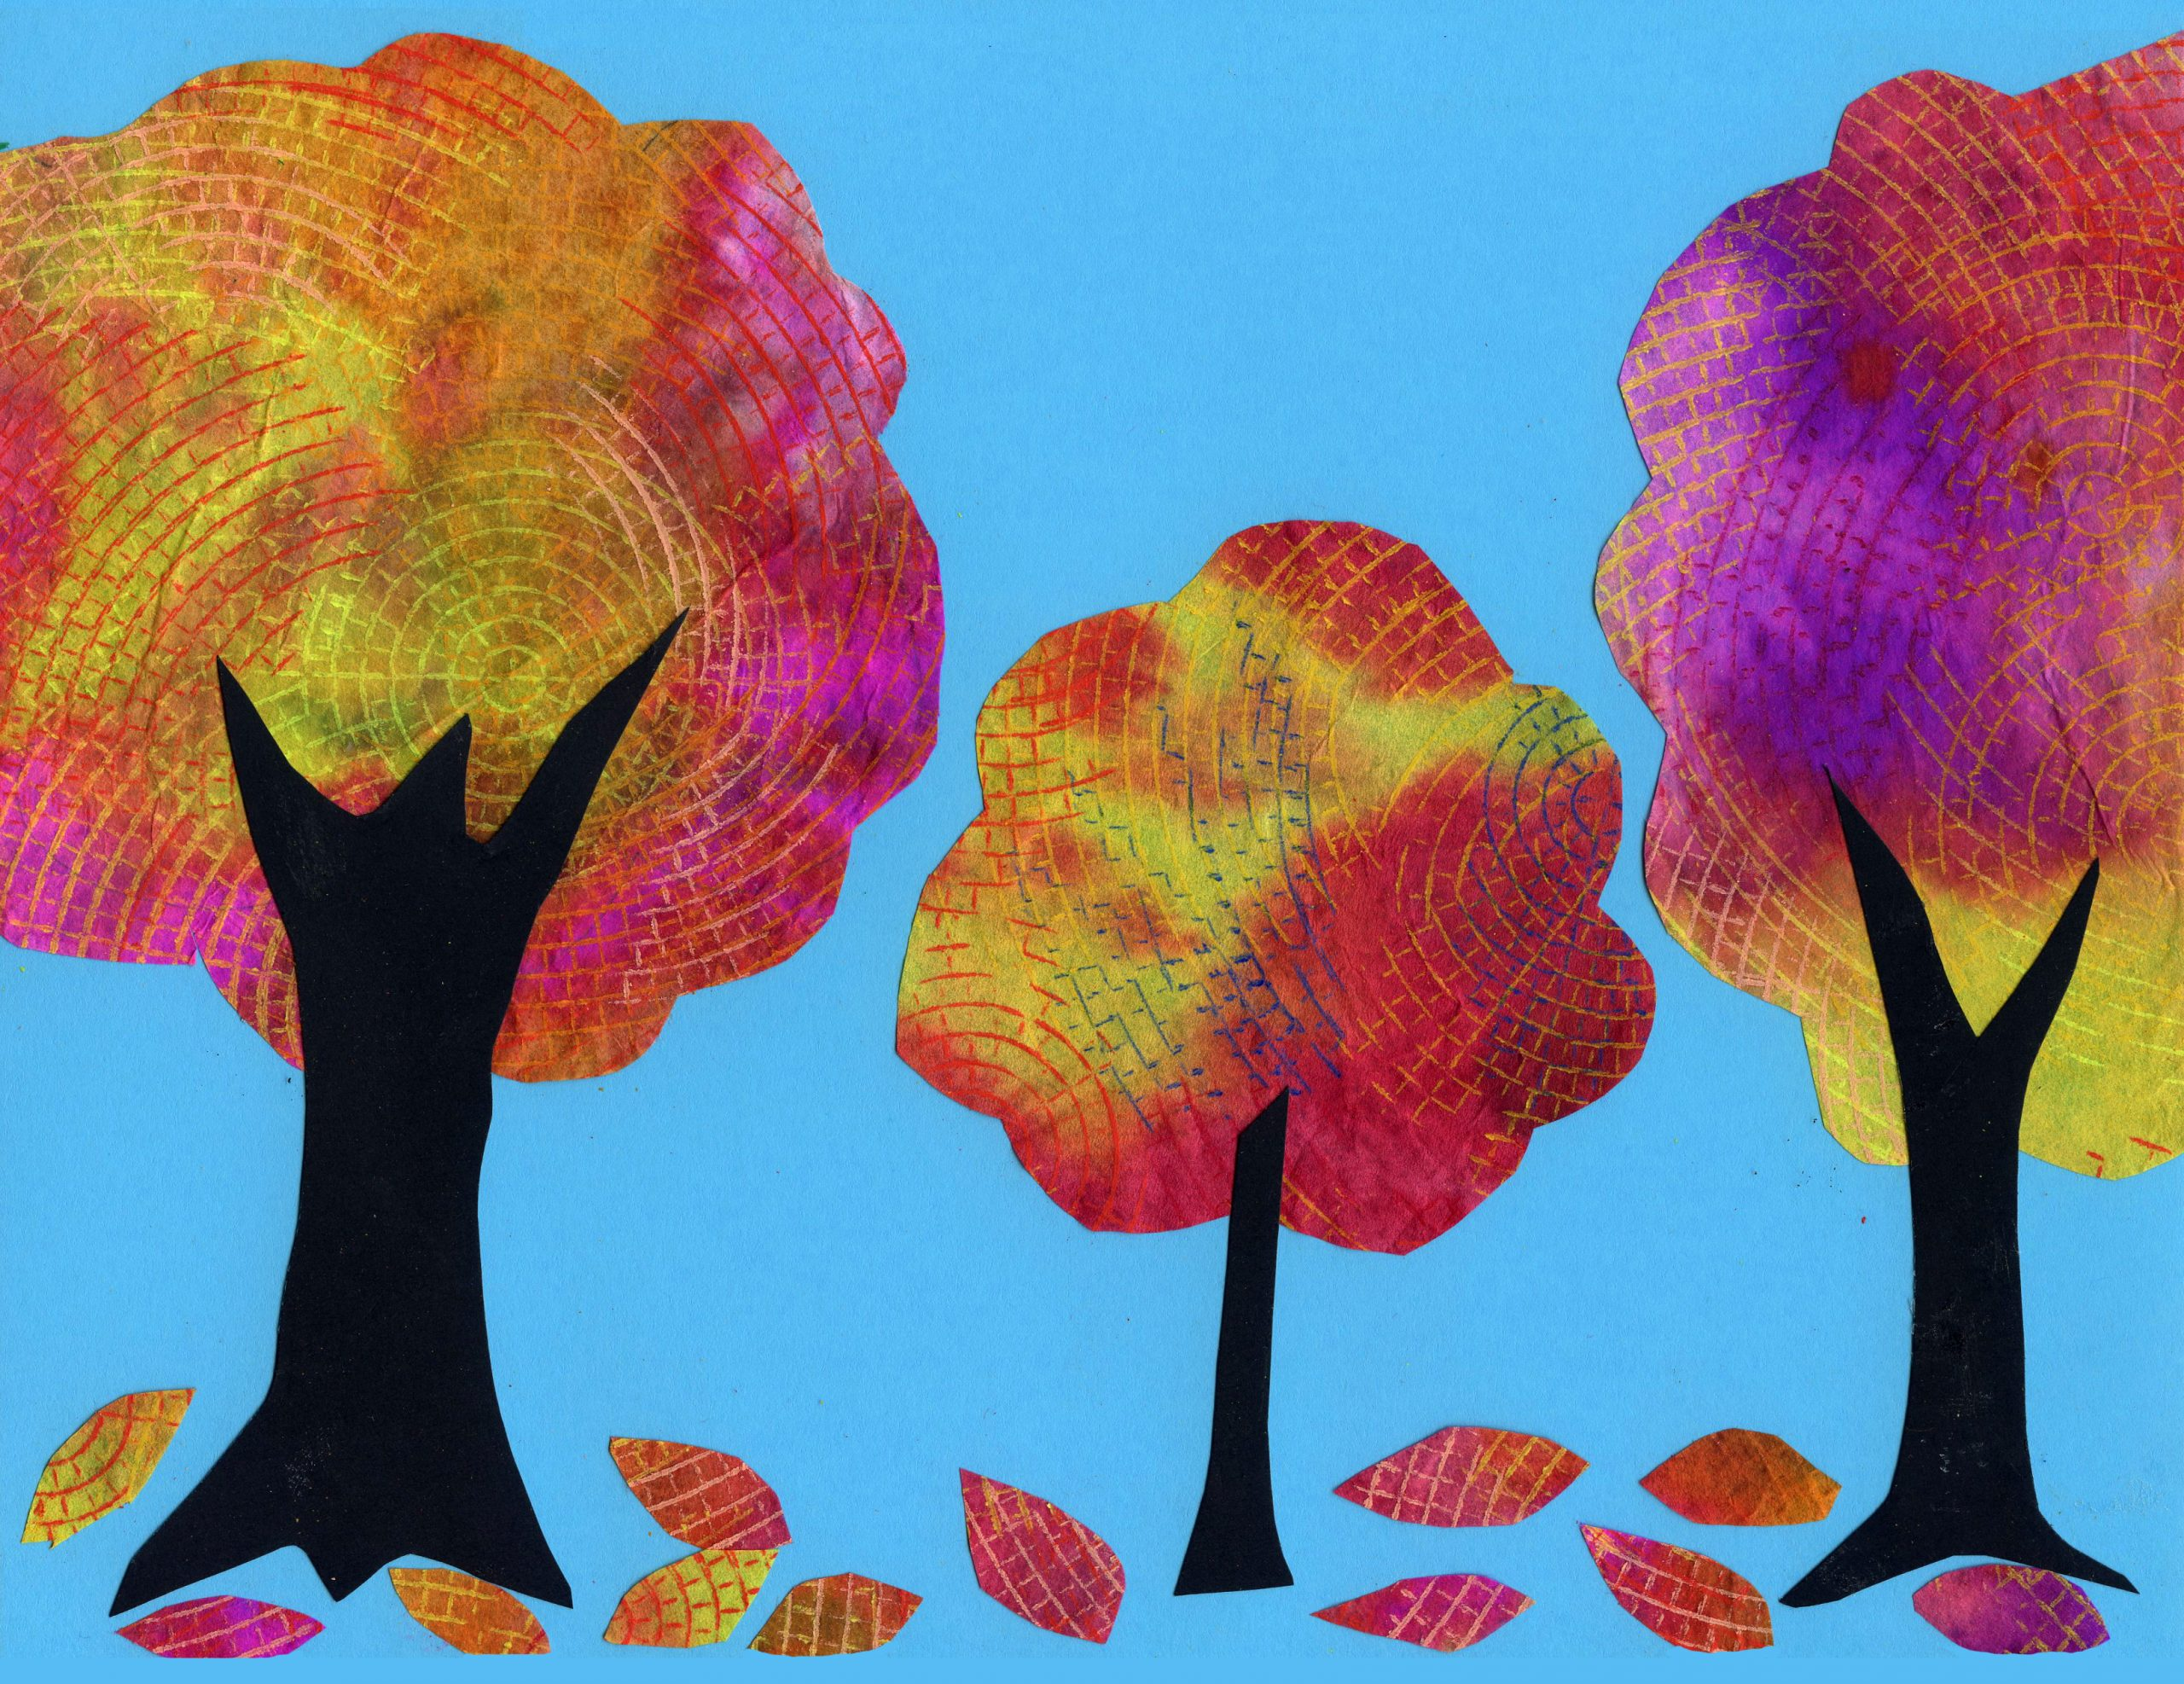 Coffee filter tree art projects for kids for Watercolor painting and projects